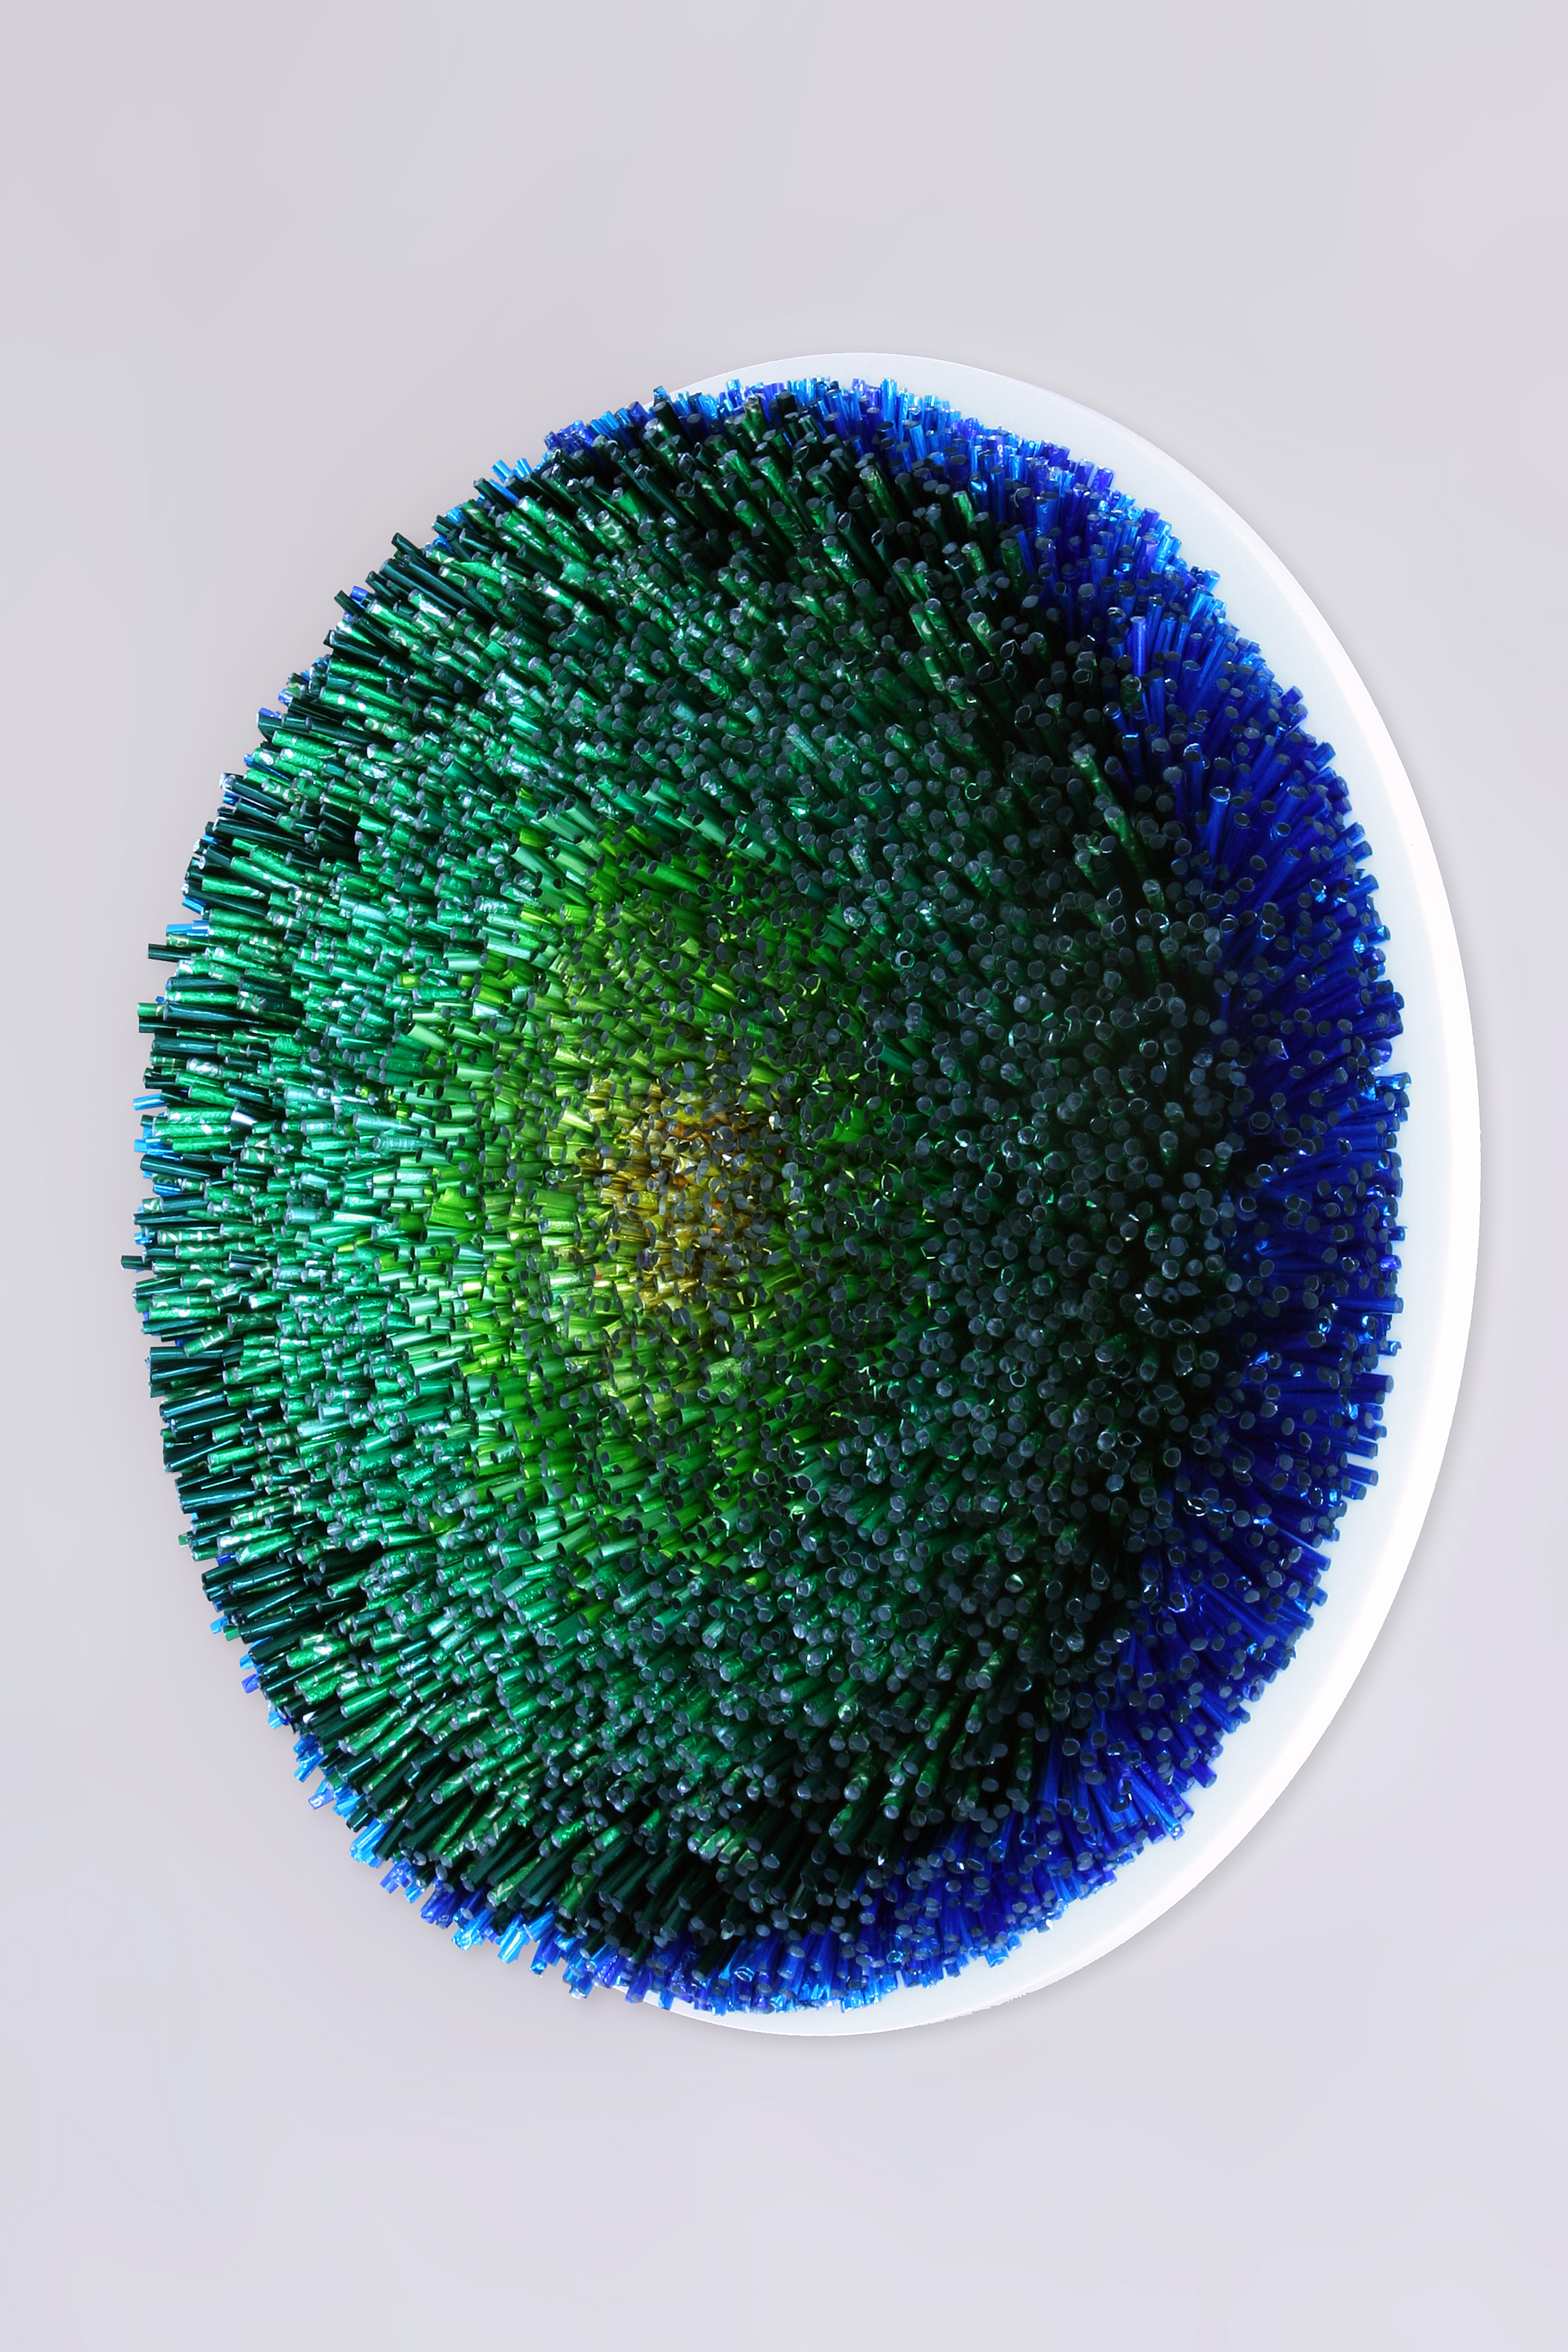 'Green Surf' by Joanne Tinker -  SOLD   40cm (diameter) x 7cm  Recycled chocolate foils  £3000